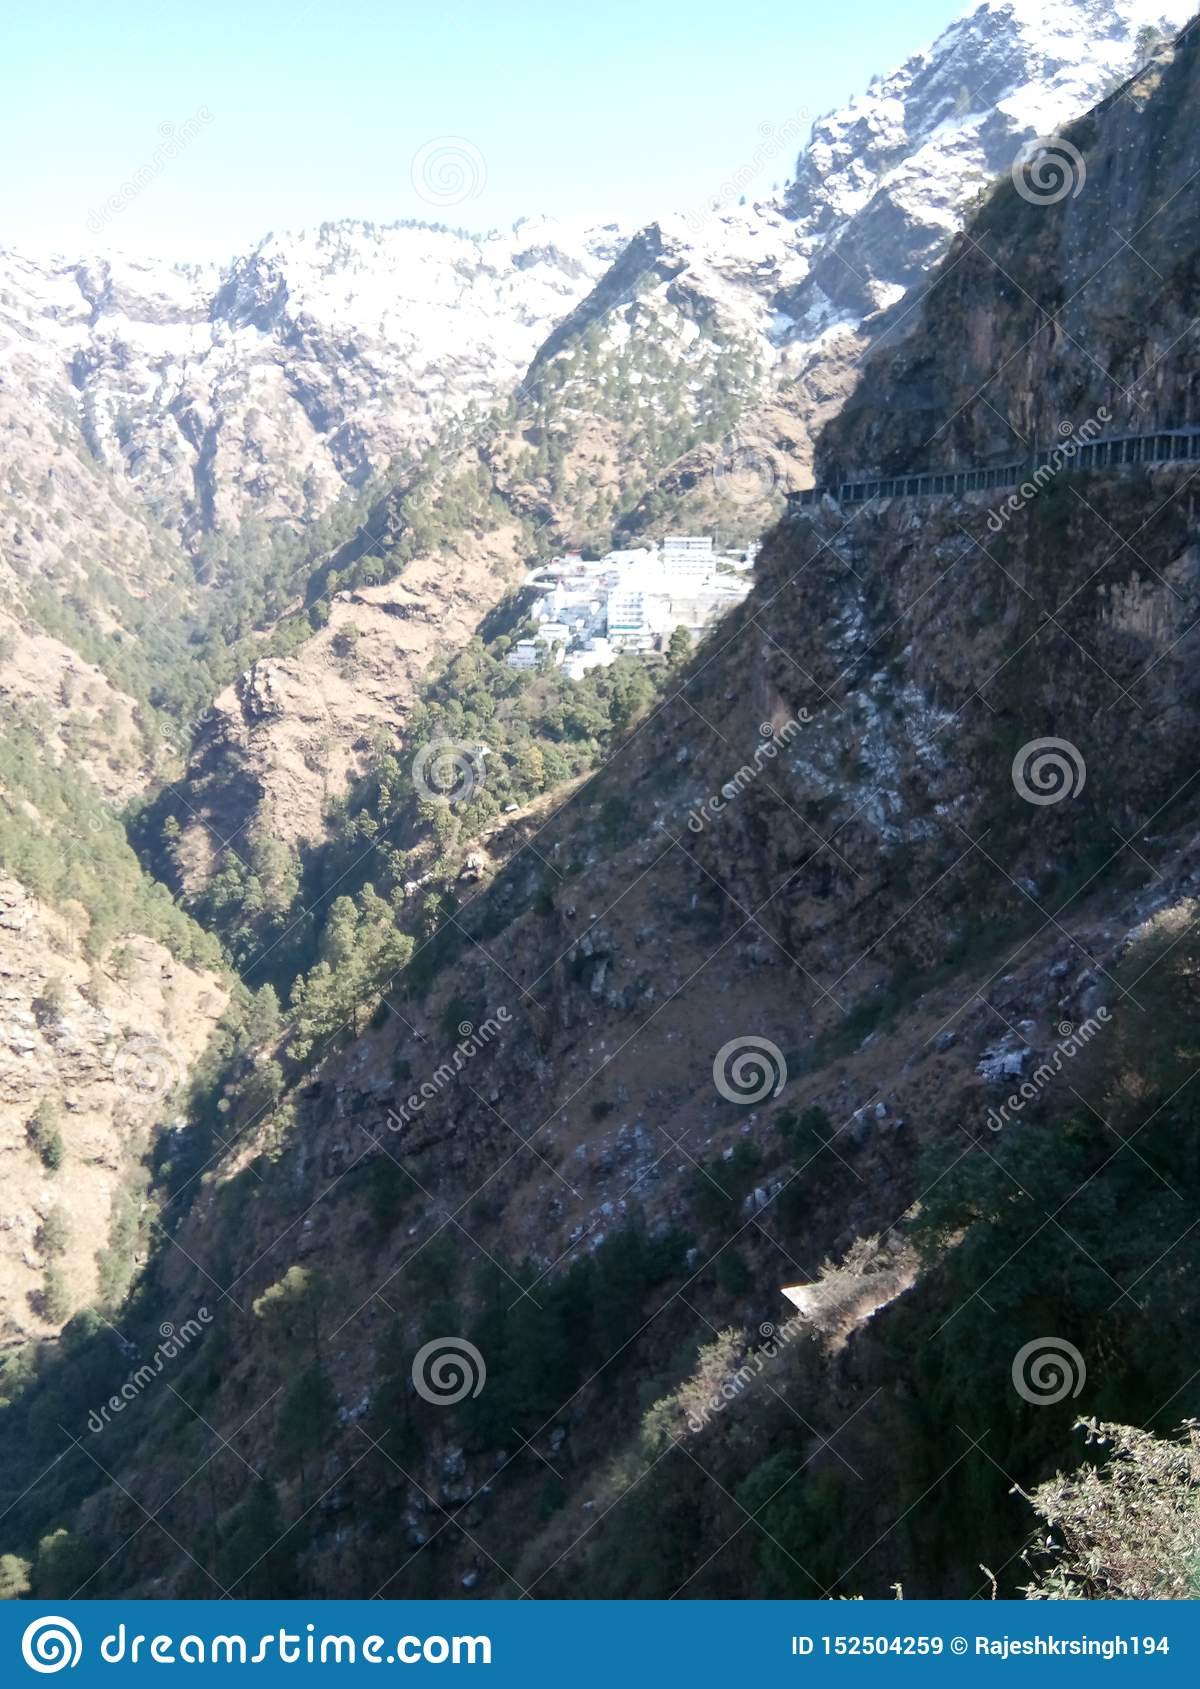 Mountain & valleys in Katra,J & K, India covered with snow at peak